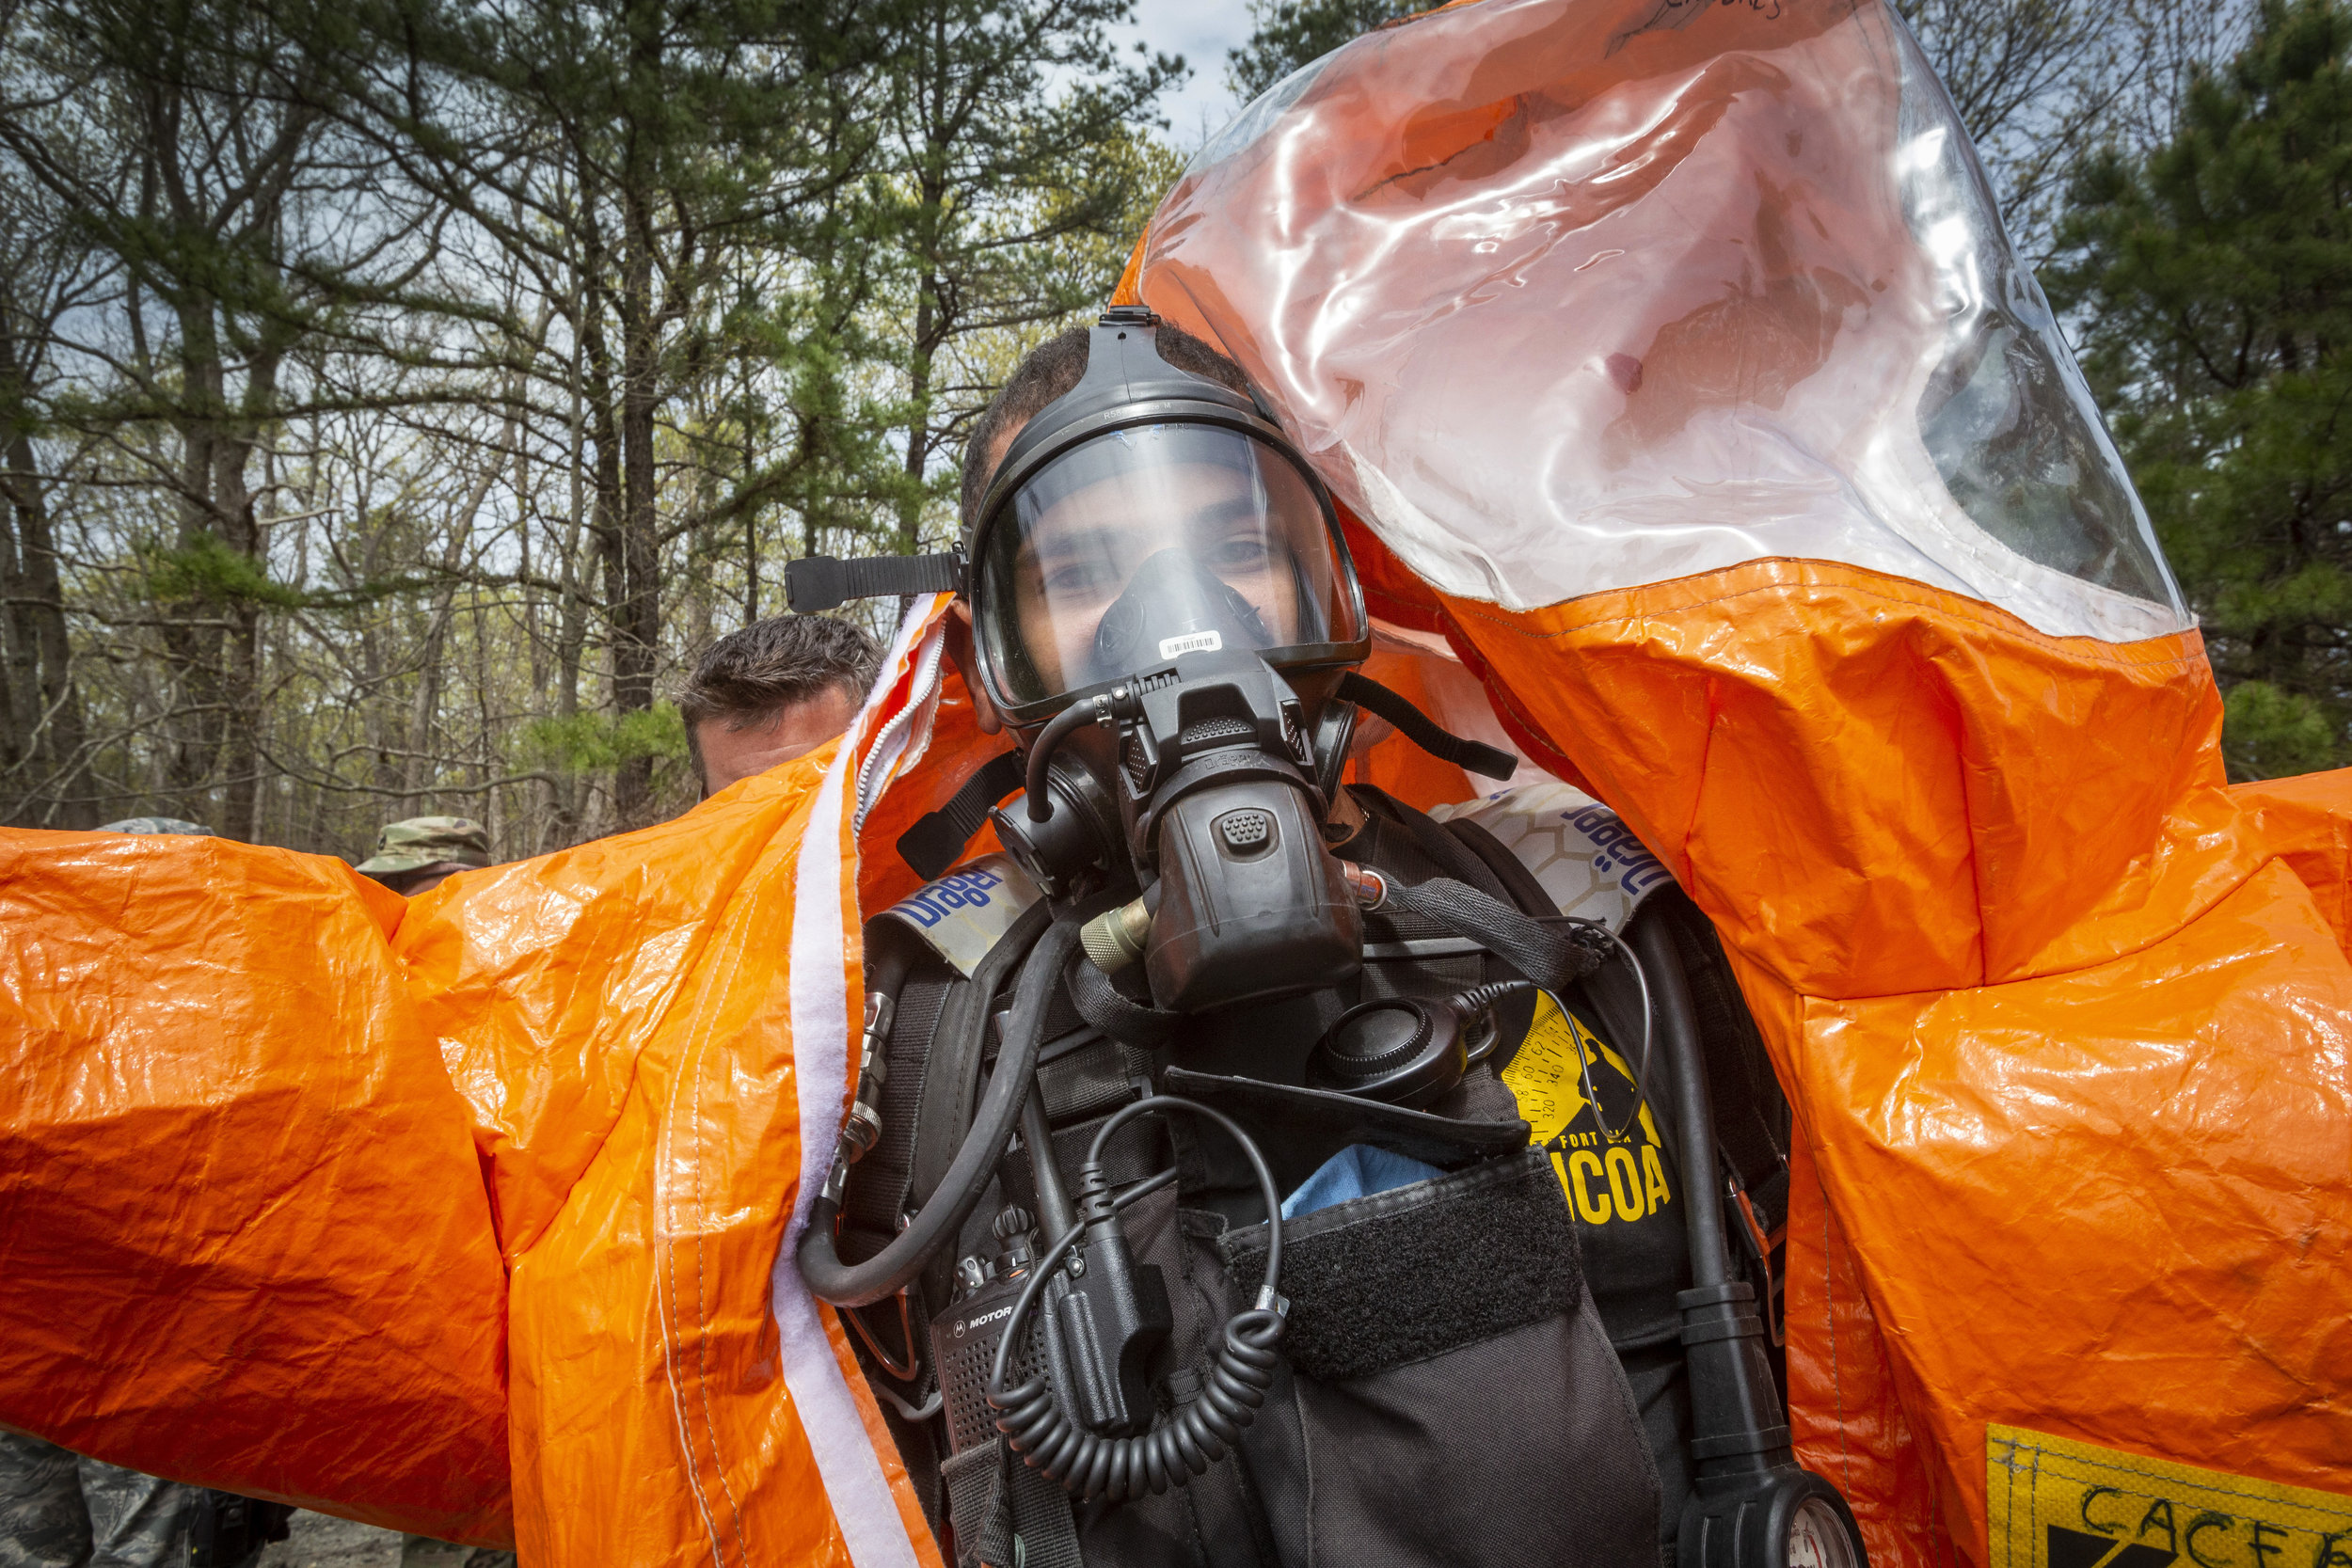 Colts Neck, New Jersey (25 April 2019) - 21st CST-WMD (New Jersey) survey team member SGT Mauricio Caceres dons his Level A suit during an Army North recertification evaluation. (Source: DVIDSHub.net, Mark Olsen, New Jersey National Guard).